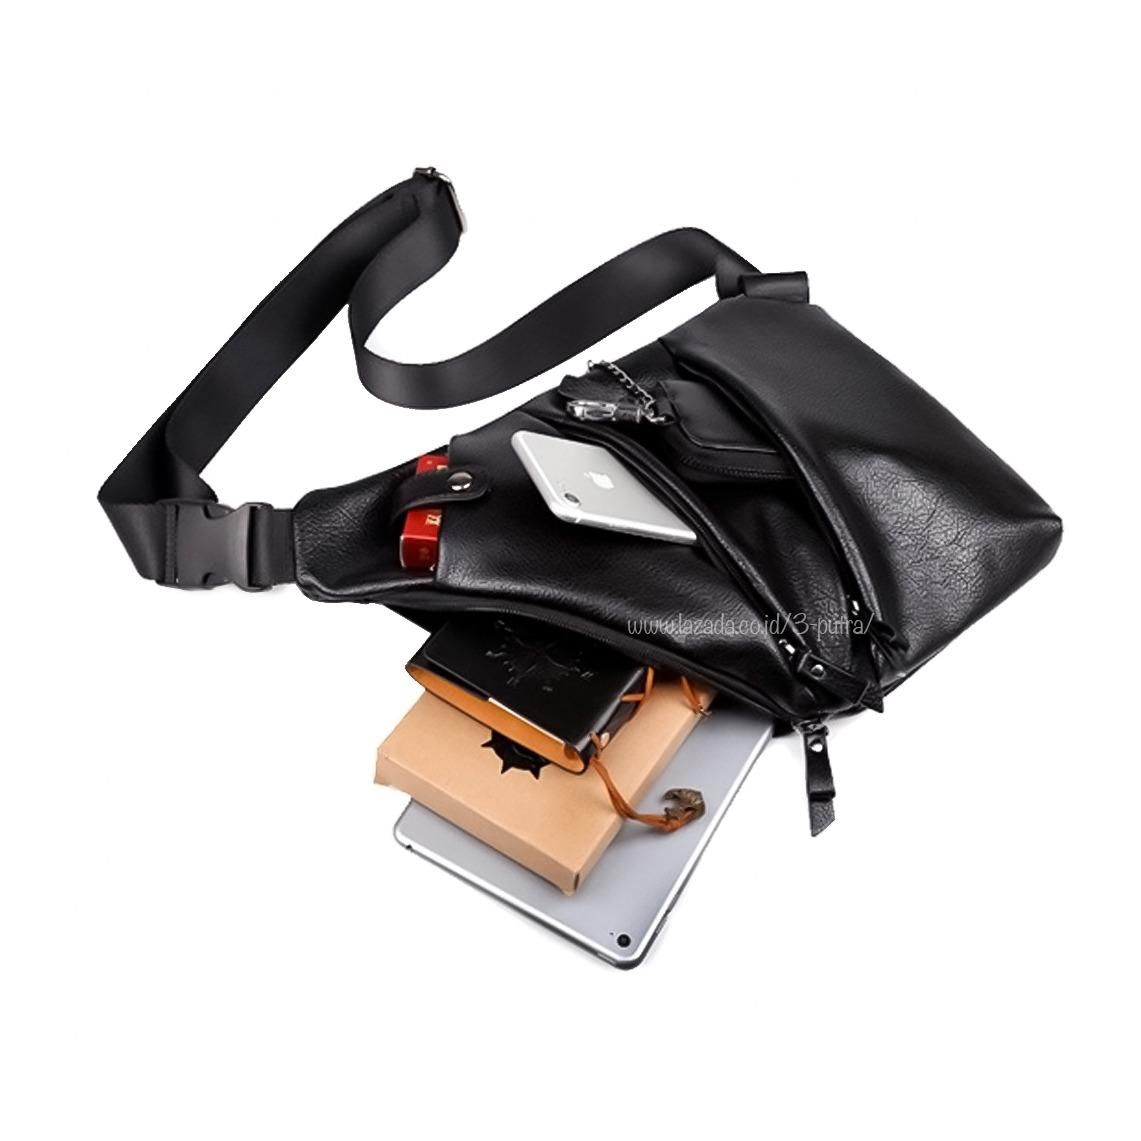 Harga Tas Slempang Anti Thief Anti Maling Import Messenger Bags Import Sling Bags Leather Tas Slempang Kulit Asli 3P Sling Leather Import Black Termahal